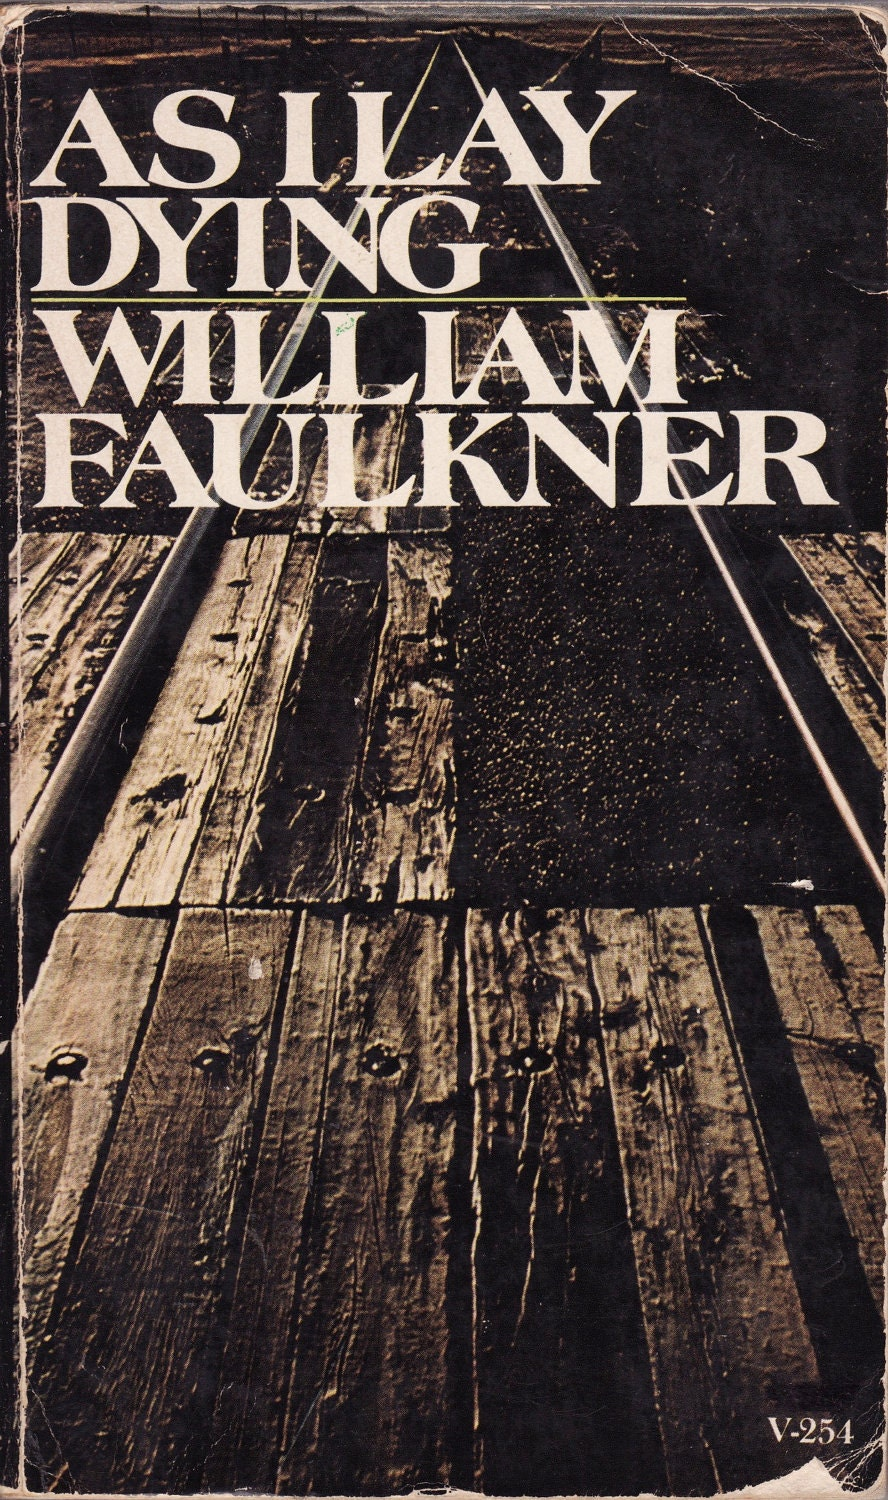 faulkner as i lay dying essays